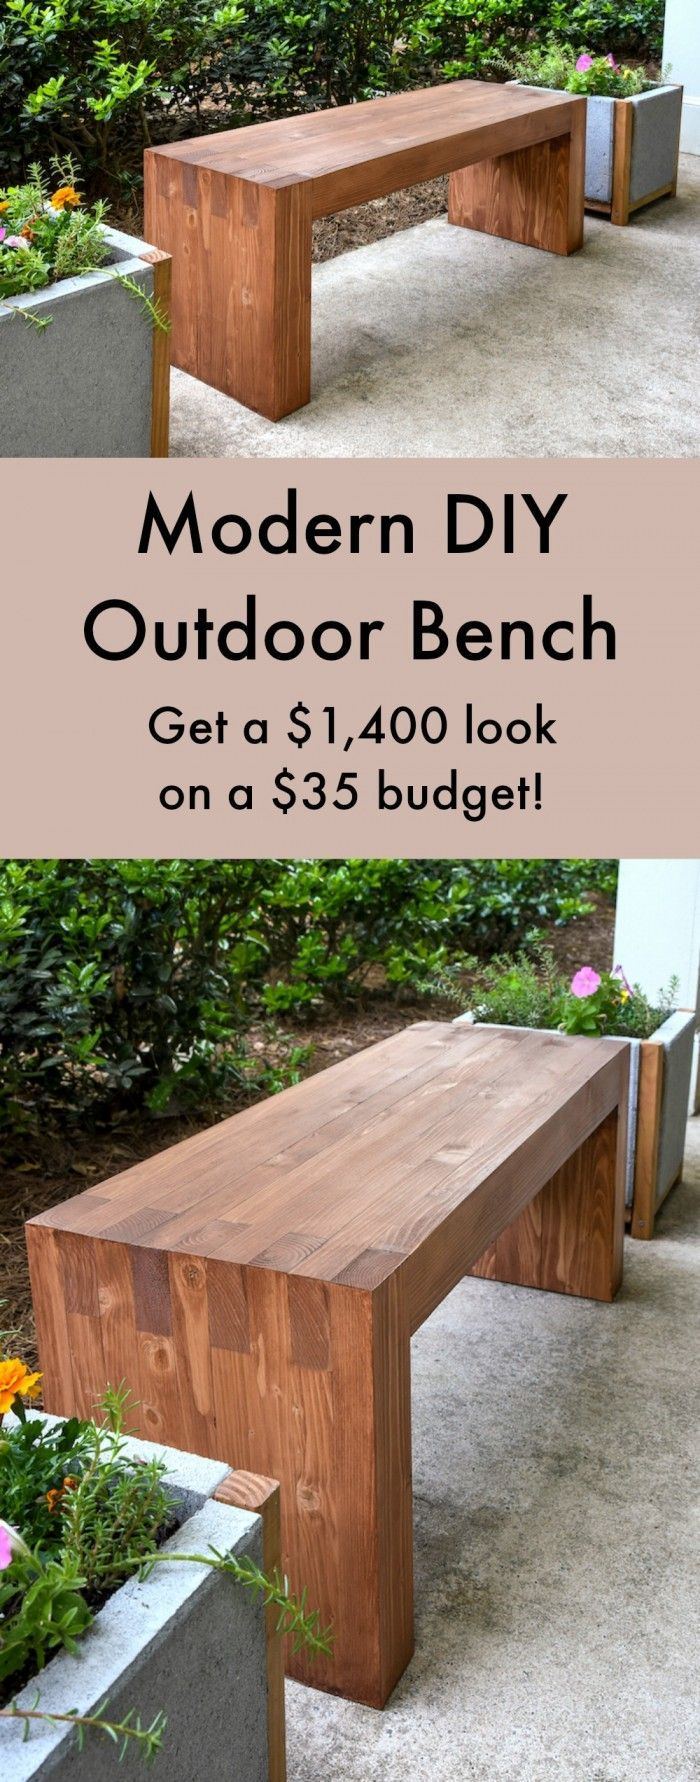 This easy modern DIY outdoor bench was made with $35 of materials - and uses no nails or screws!